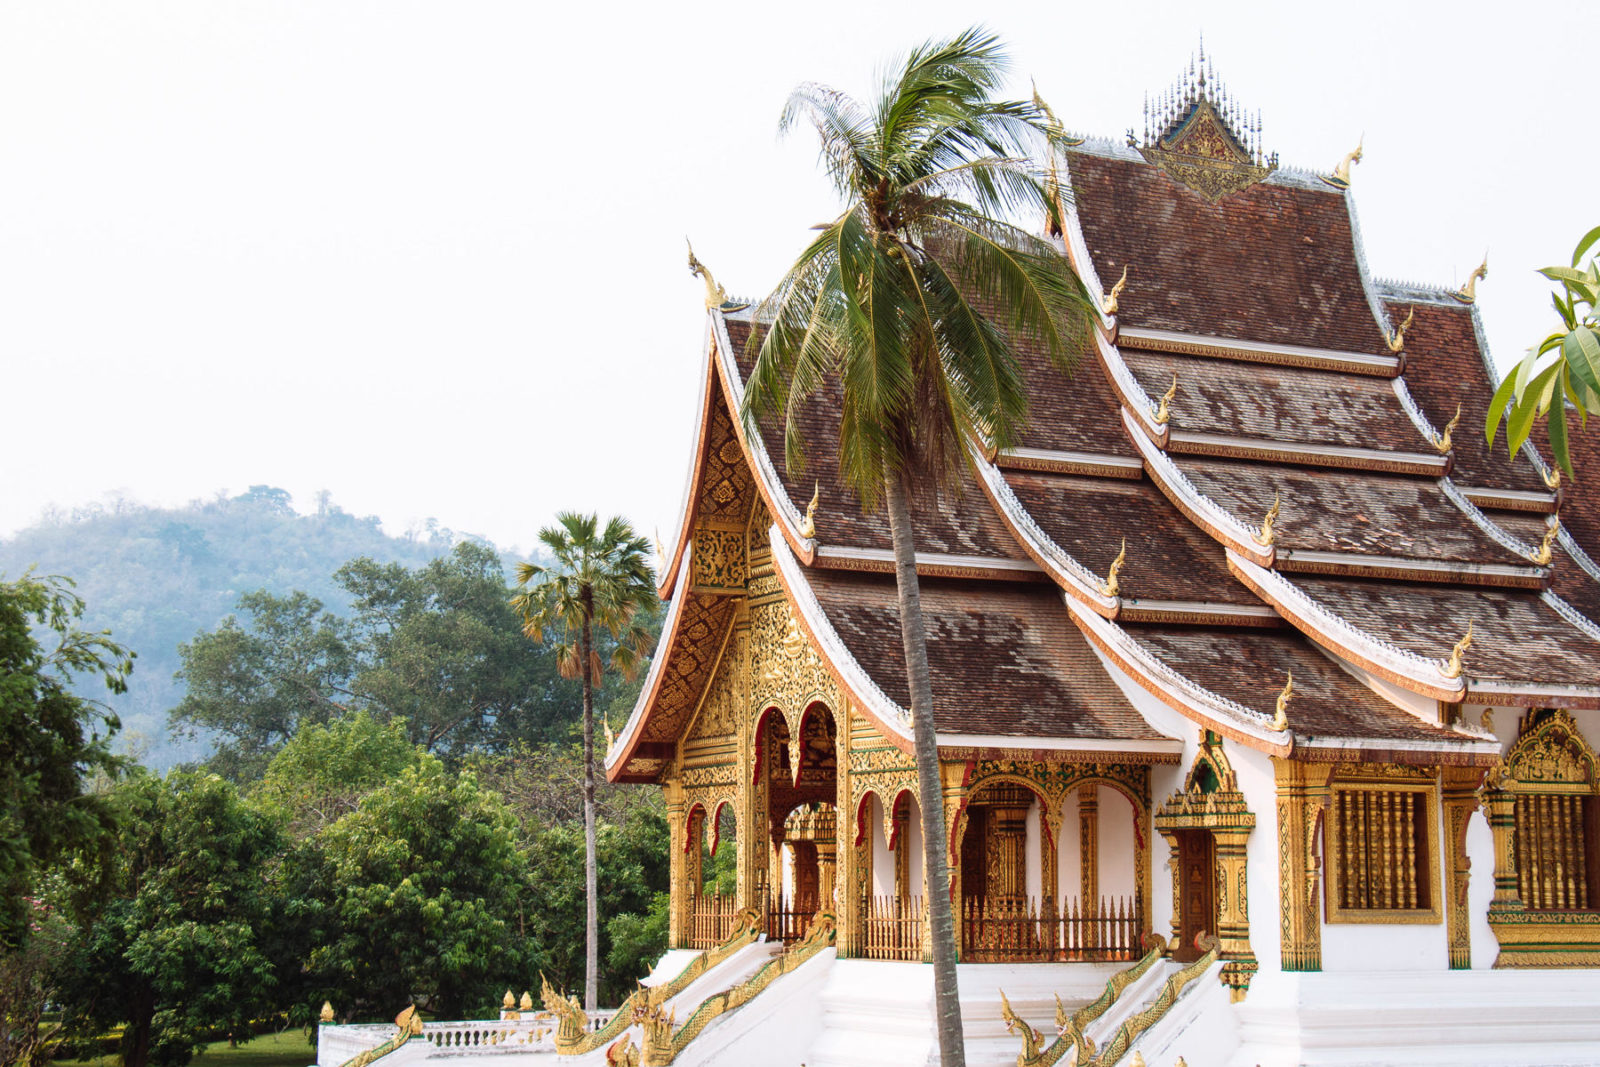 Haw Pha Bang temple, National Museum, Luang Prabang, Lao